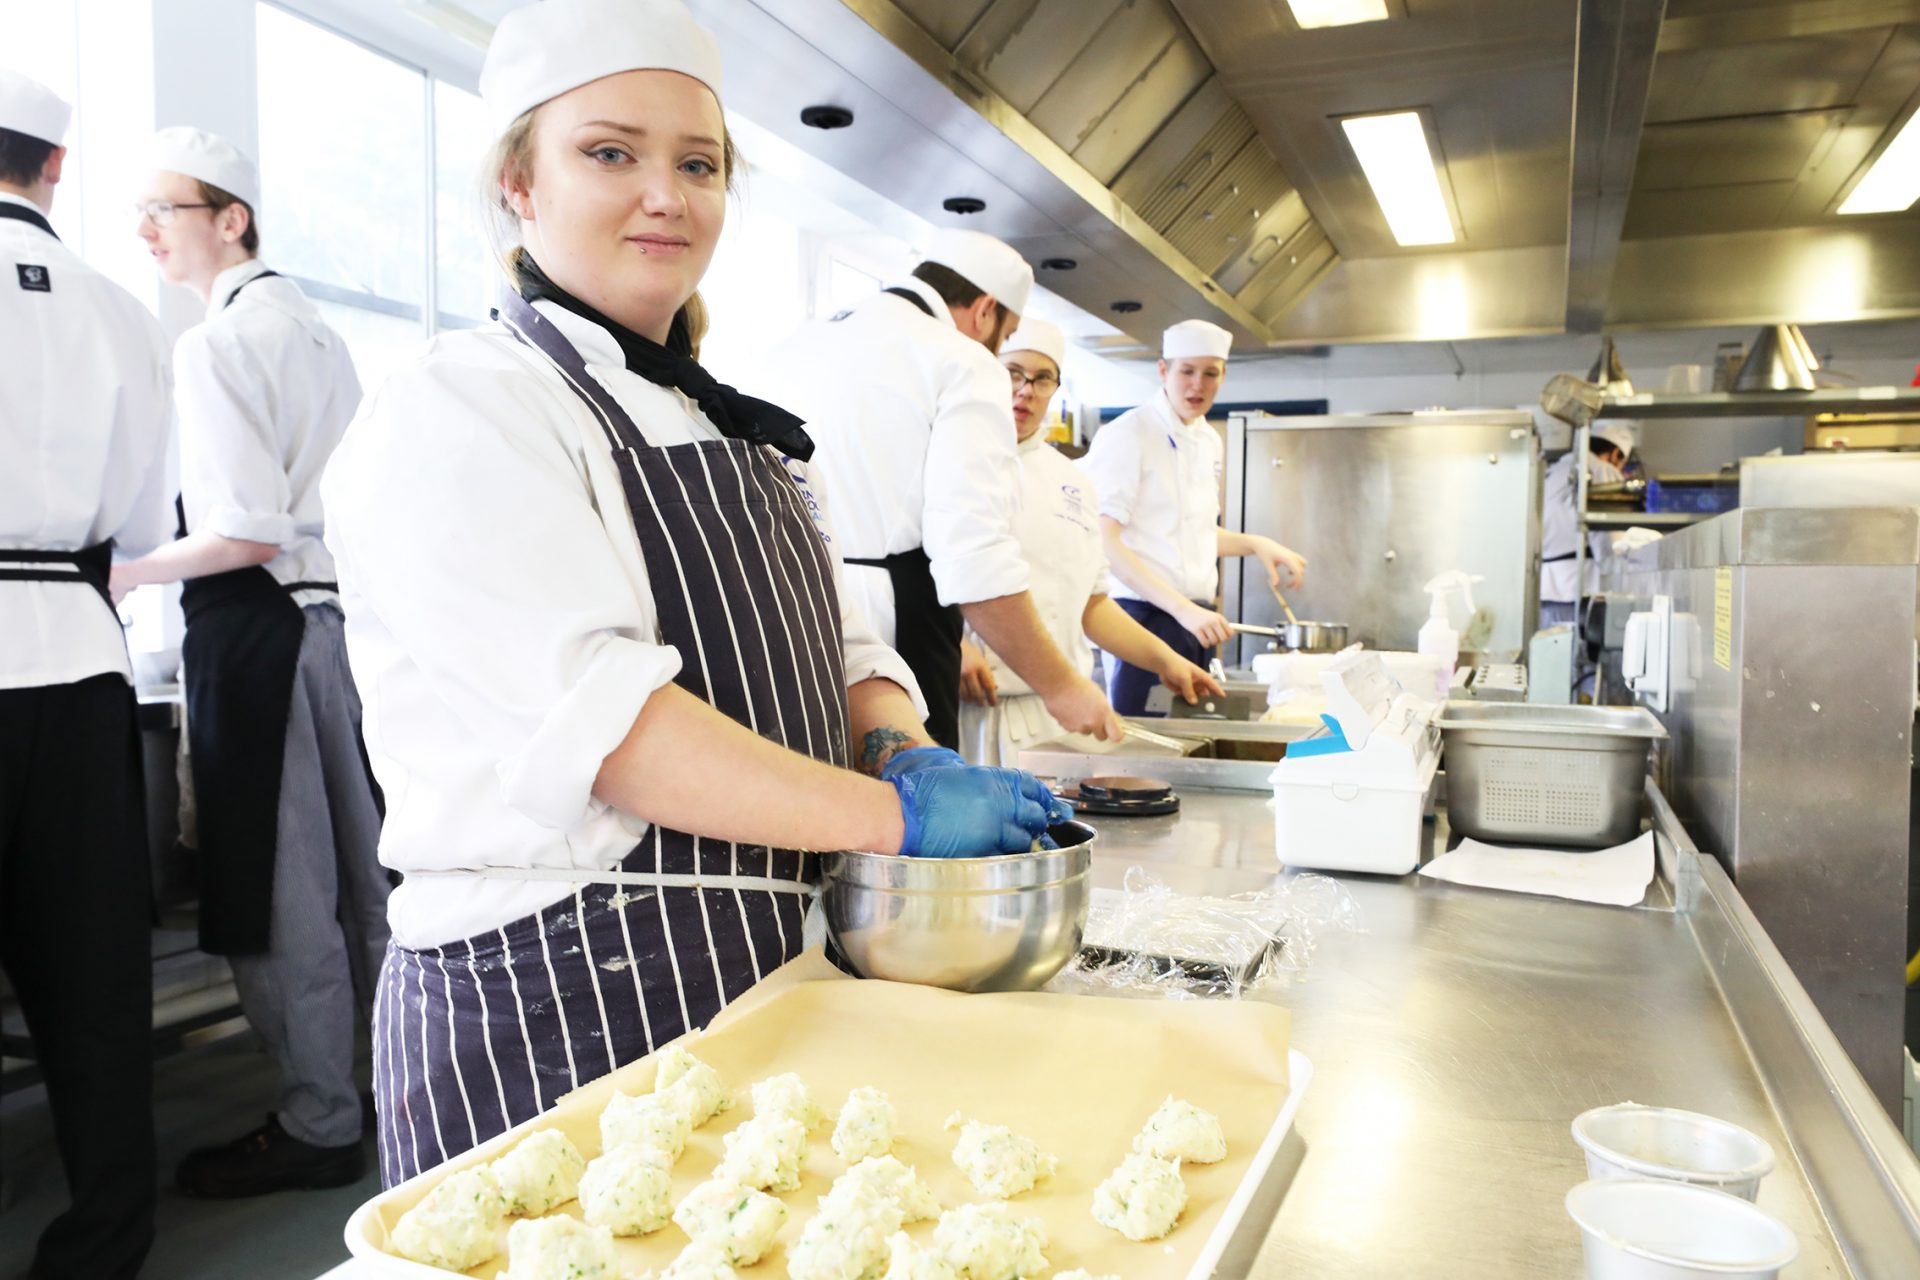 Student training in bakery kitchens at Cornwall College